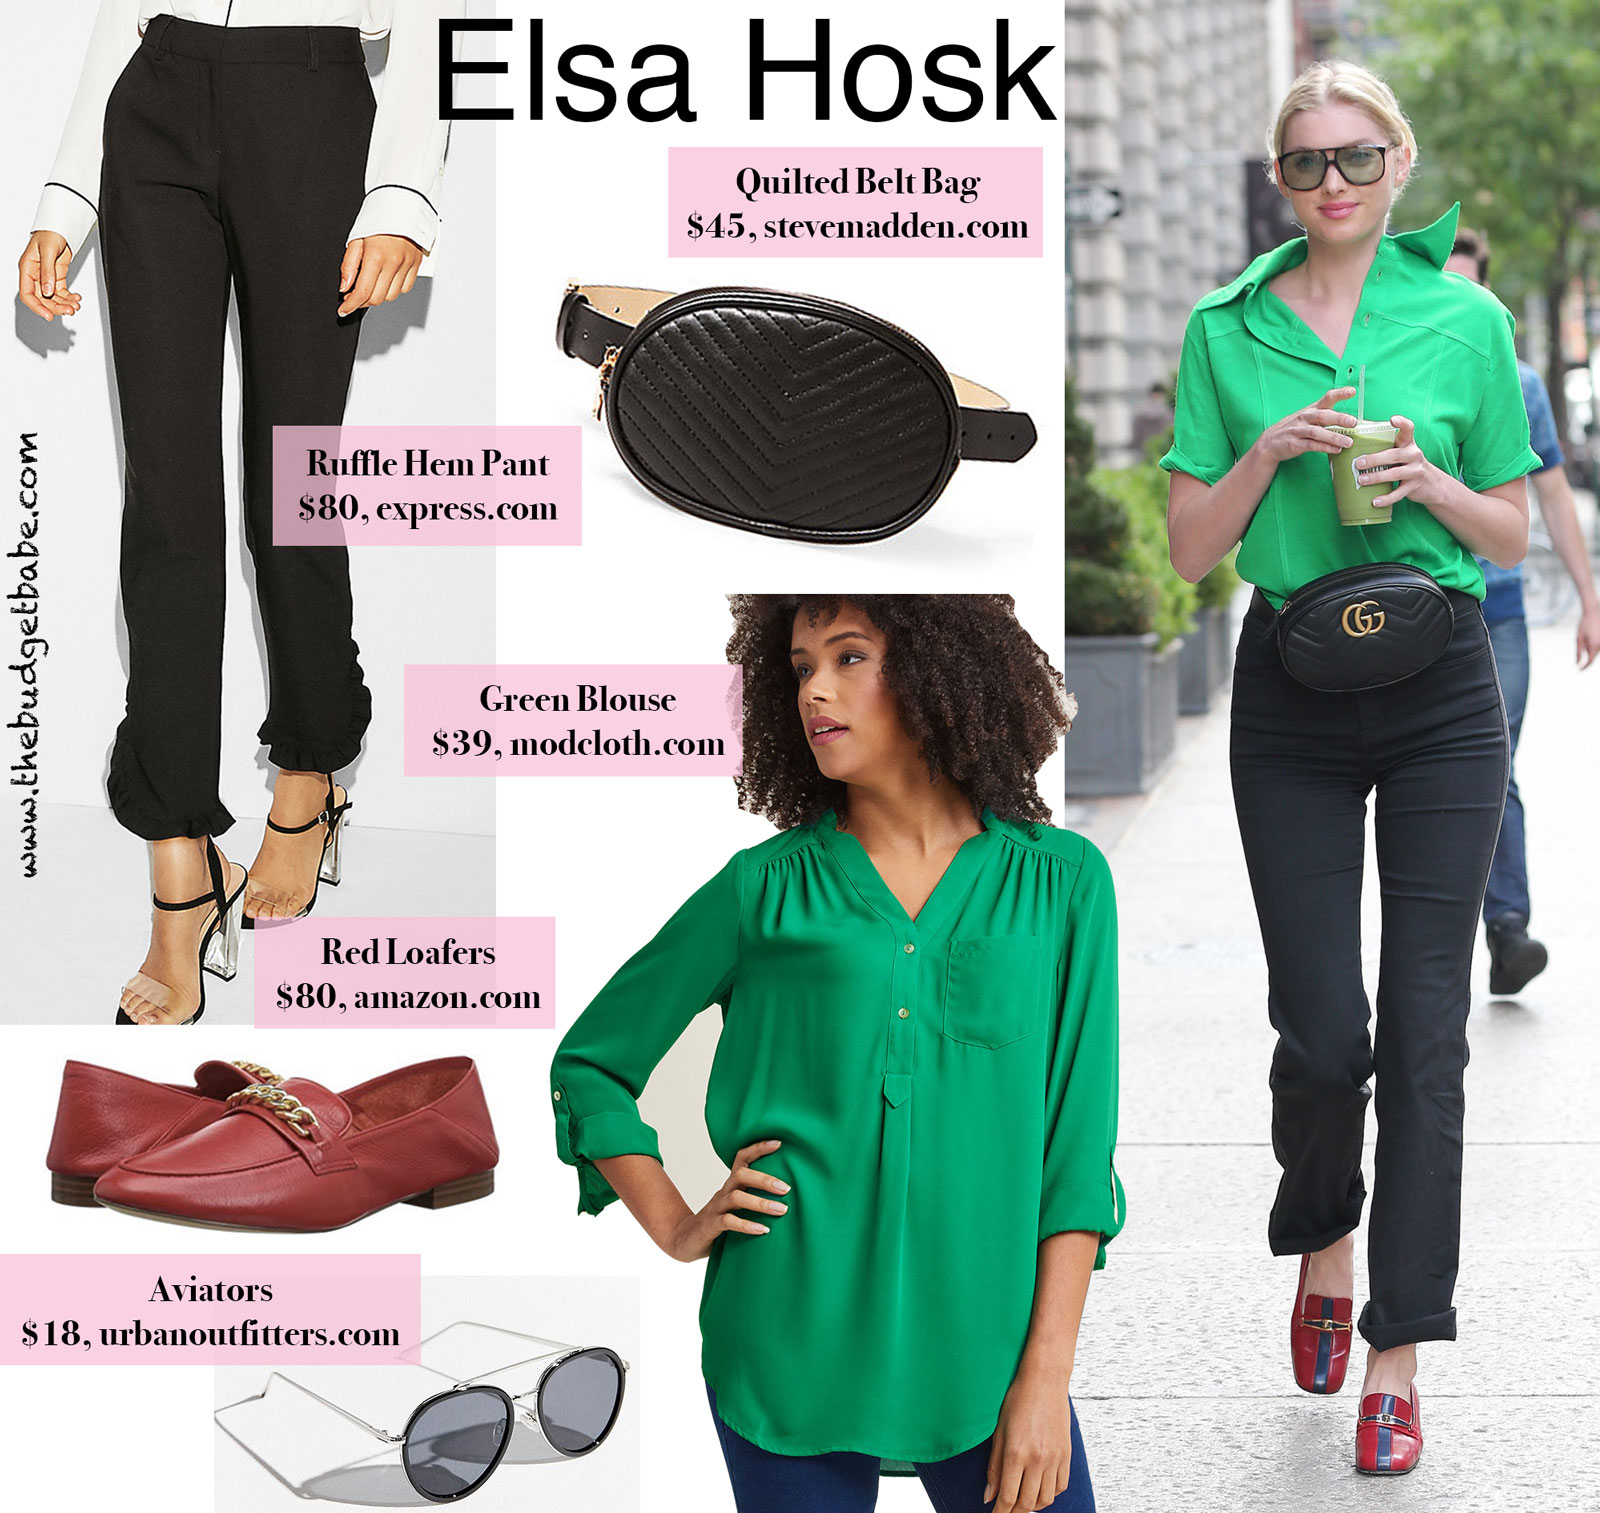 Elsa Hosk Green Blouse Look for Less